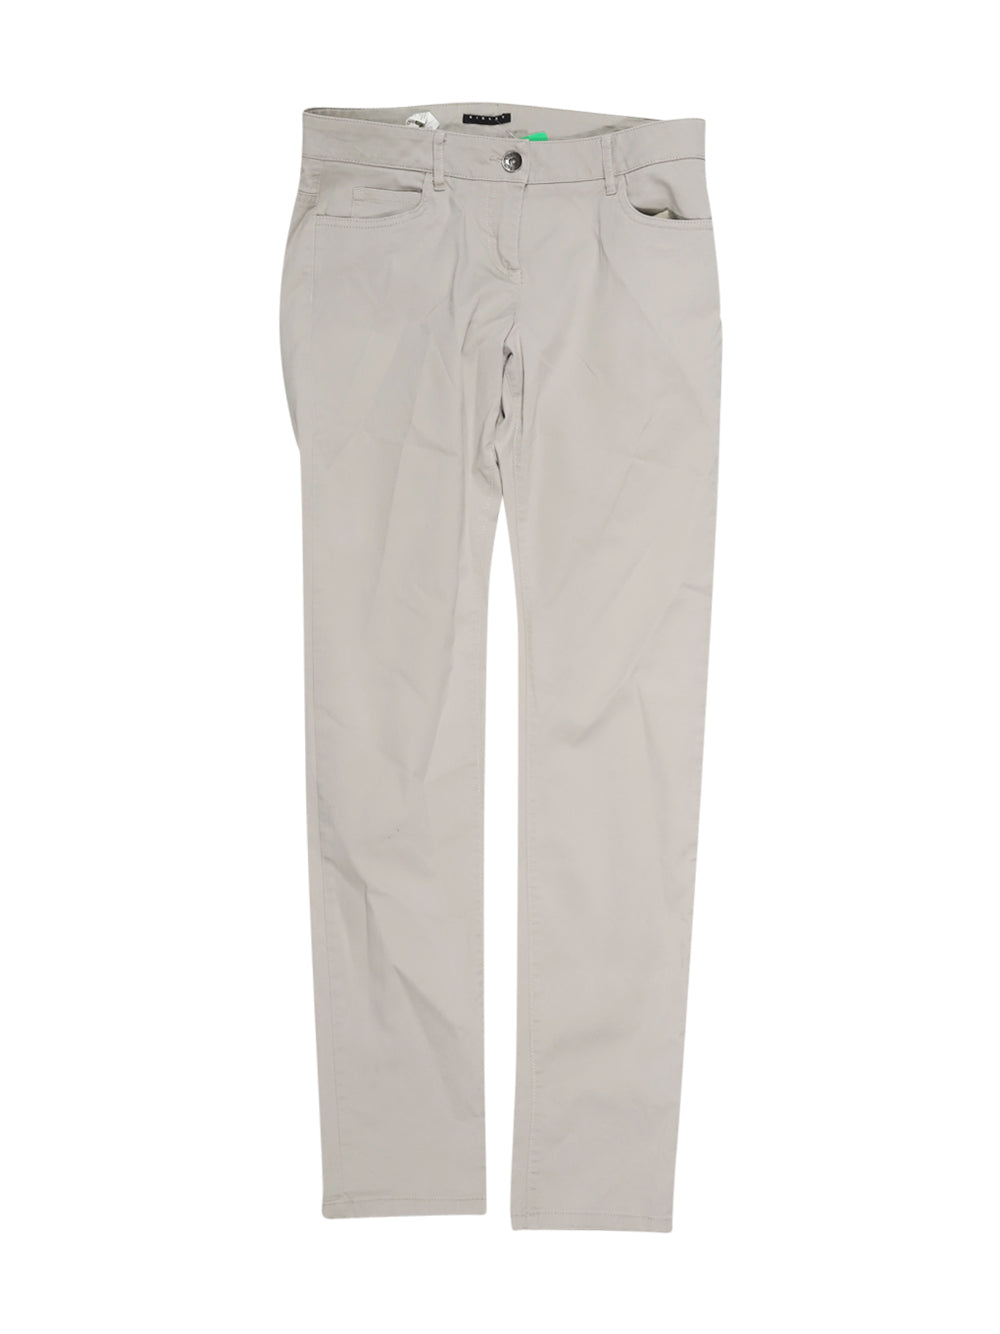 Front photo of Preloved Sisley Beige Woman's trousers - size 10/M